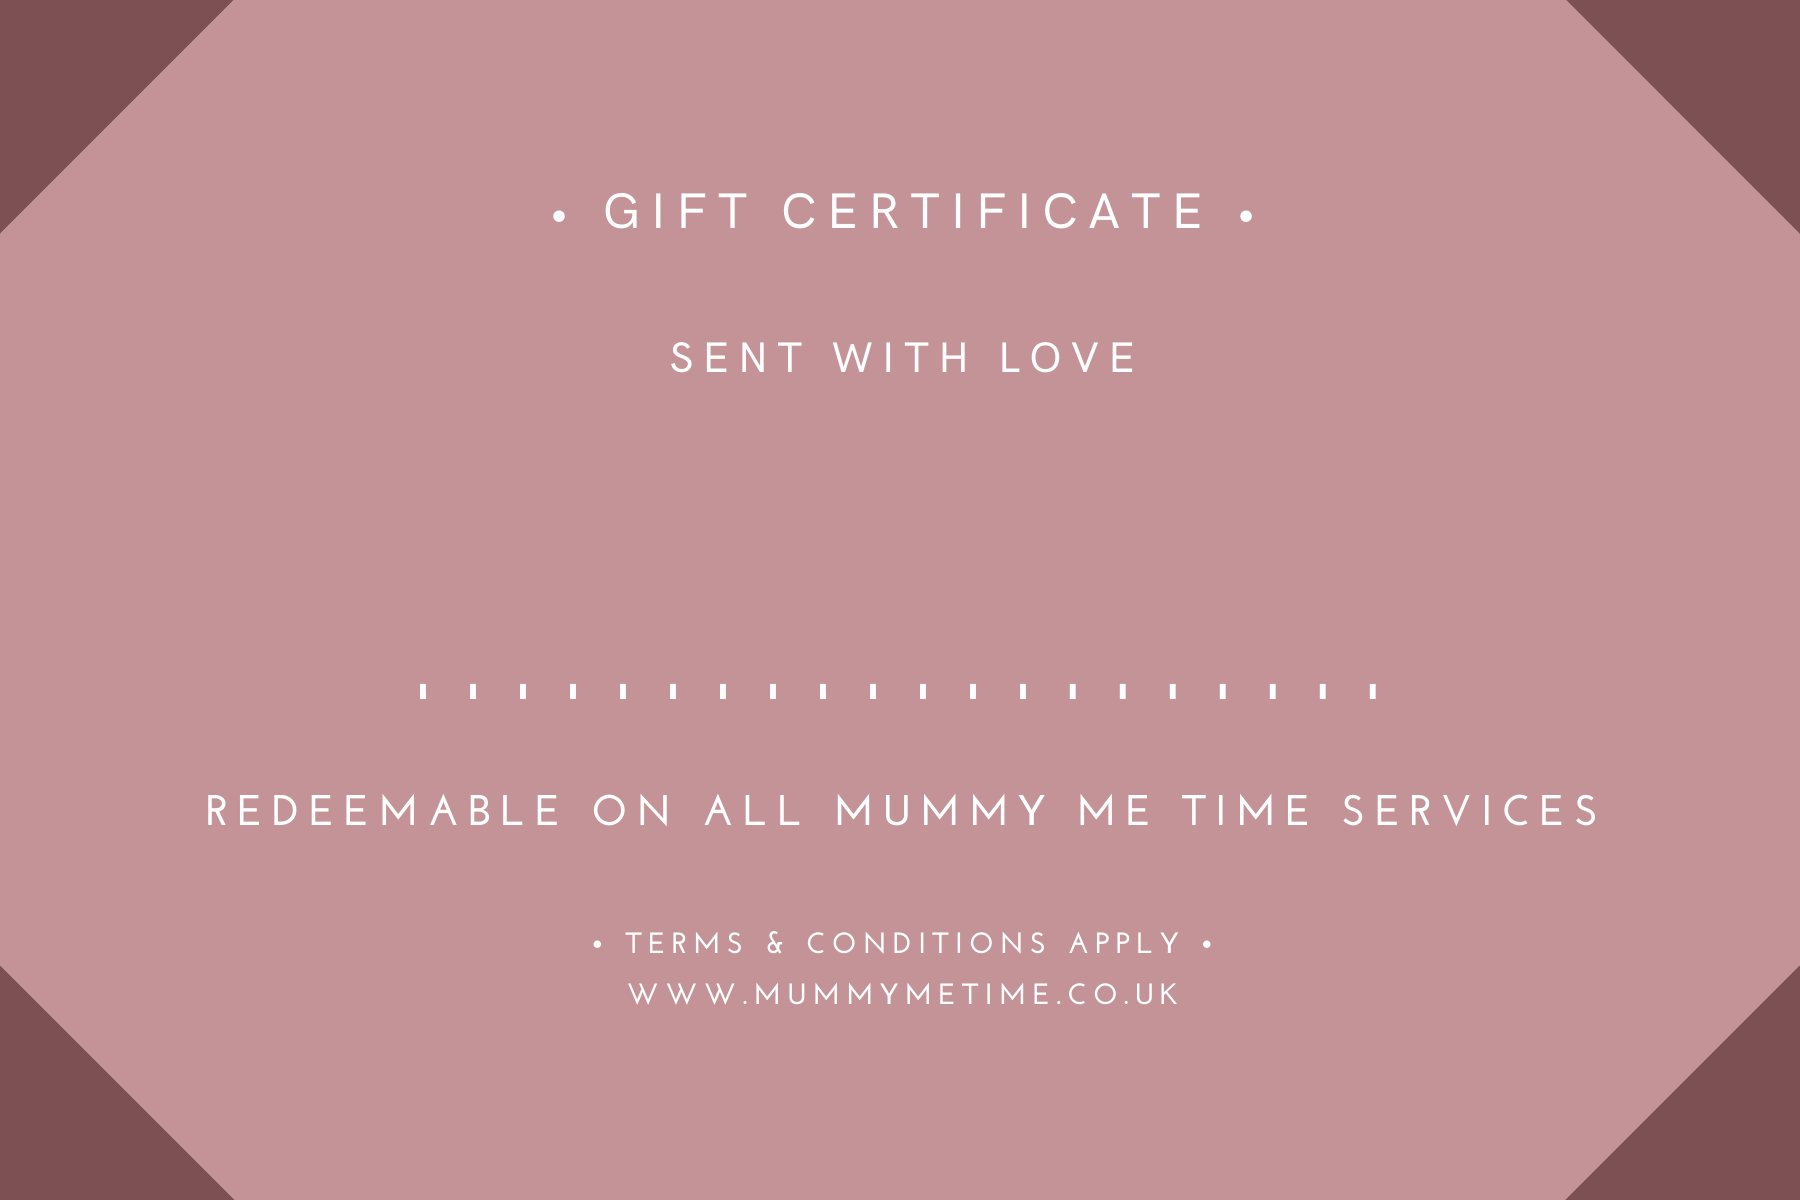 Mummy Me Time Gift Certificate (1)